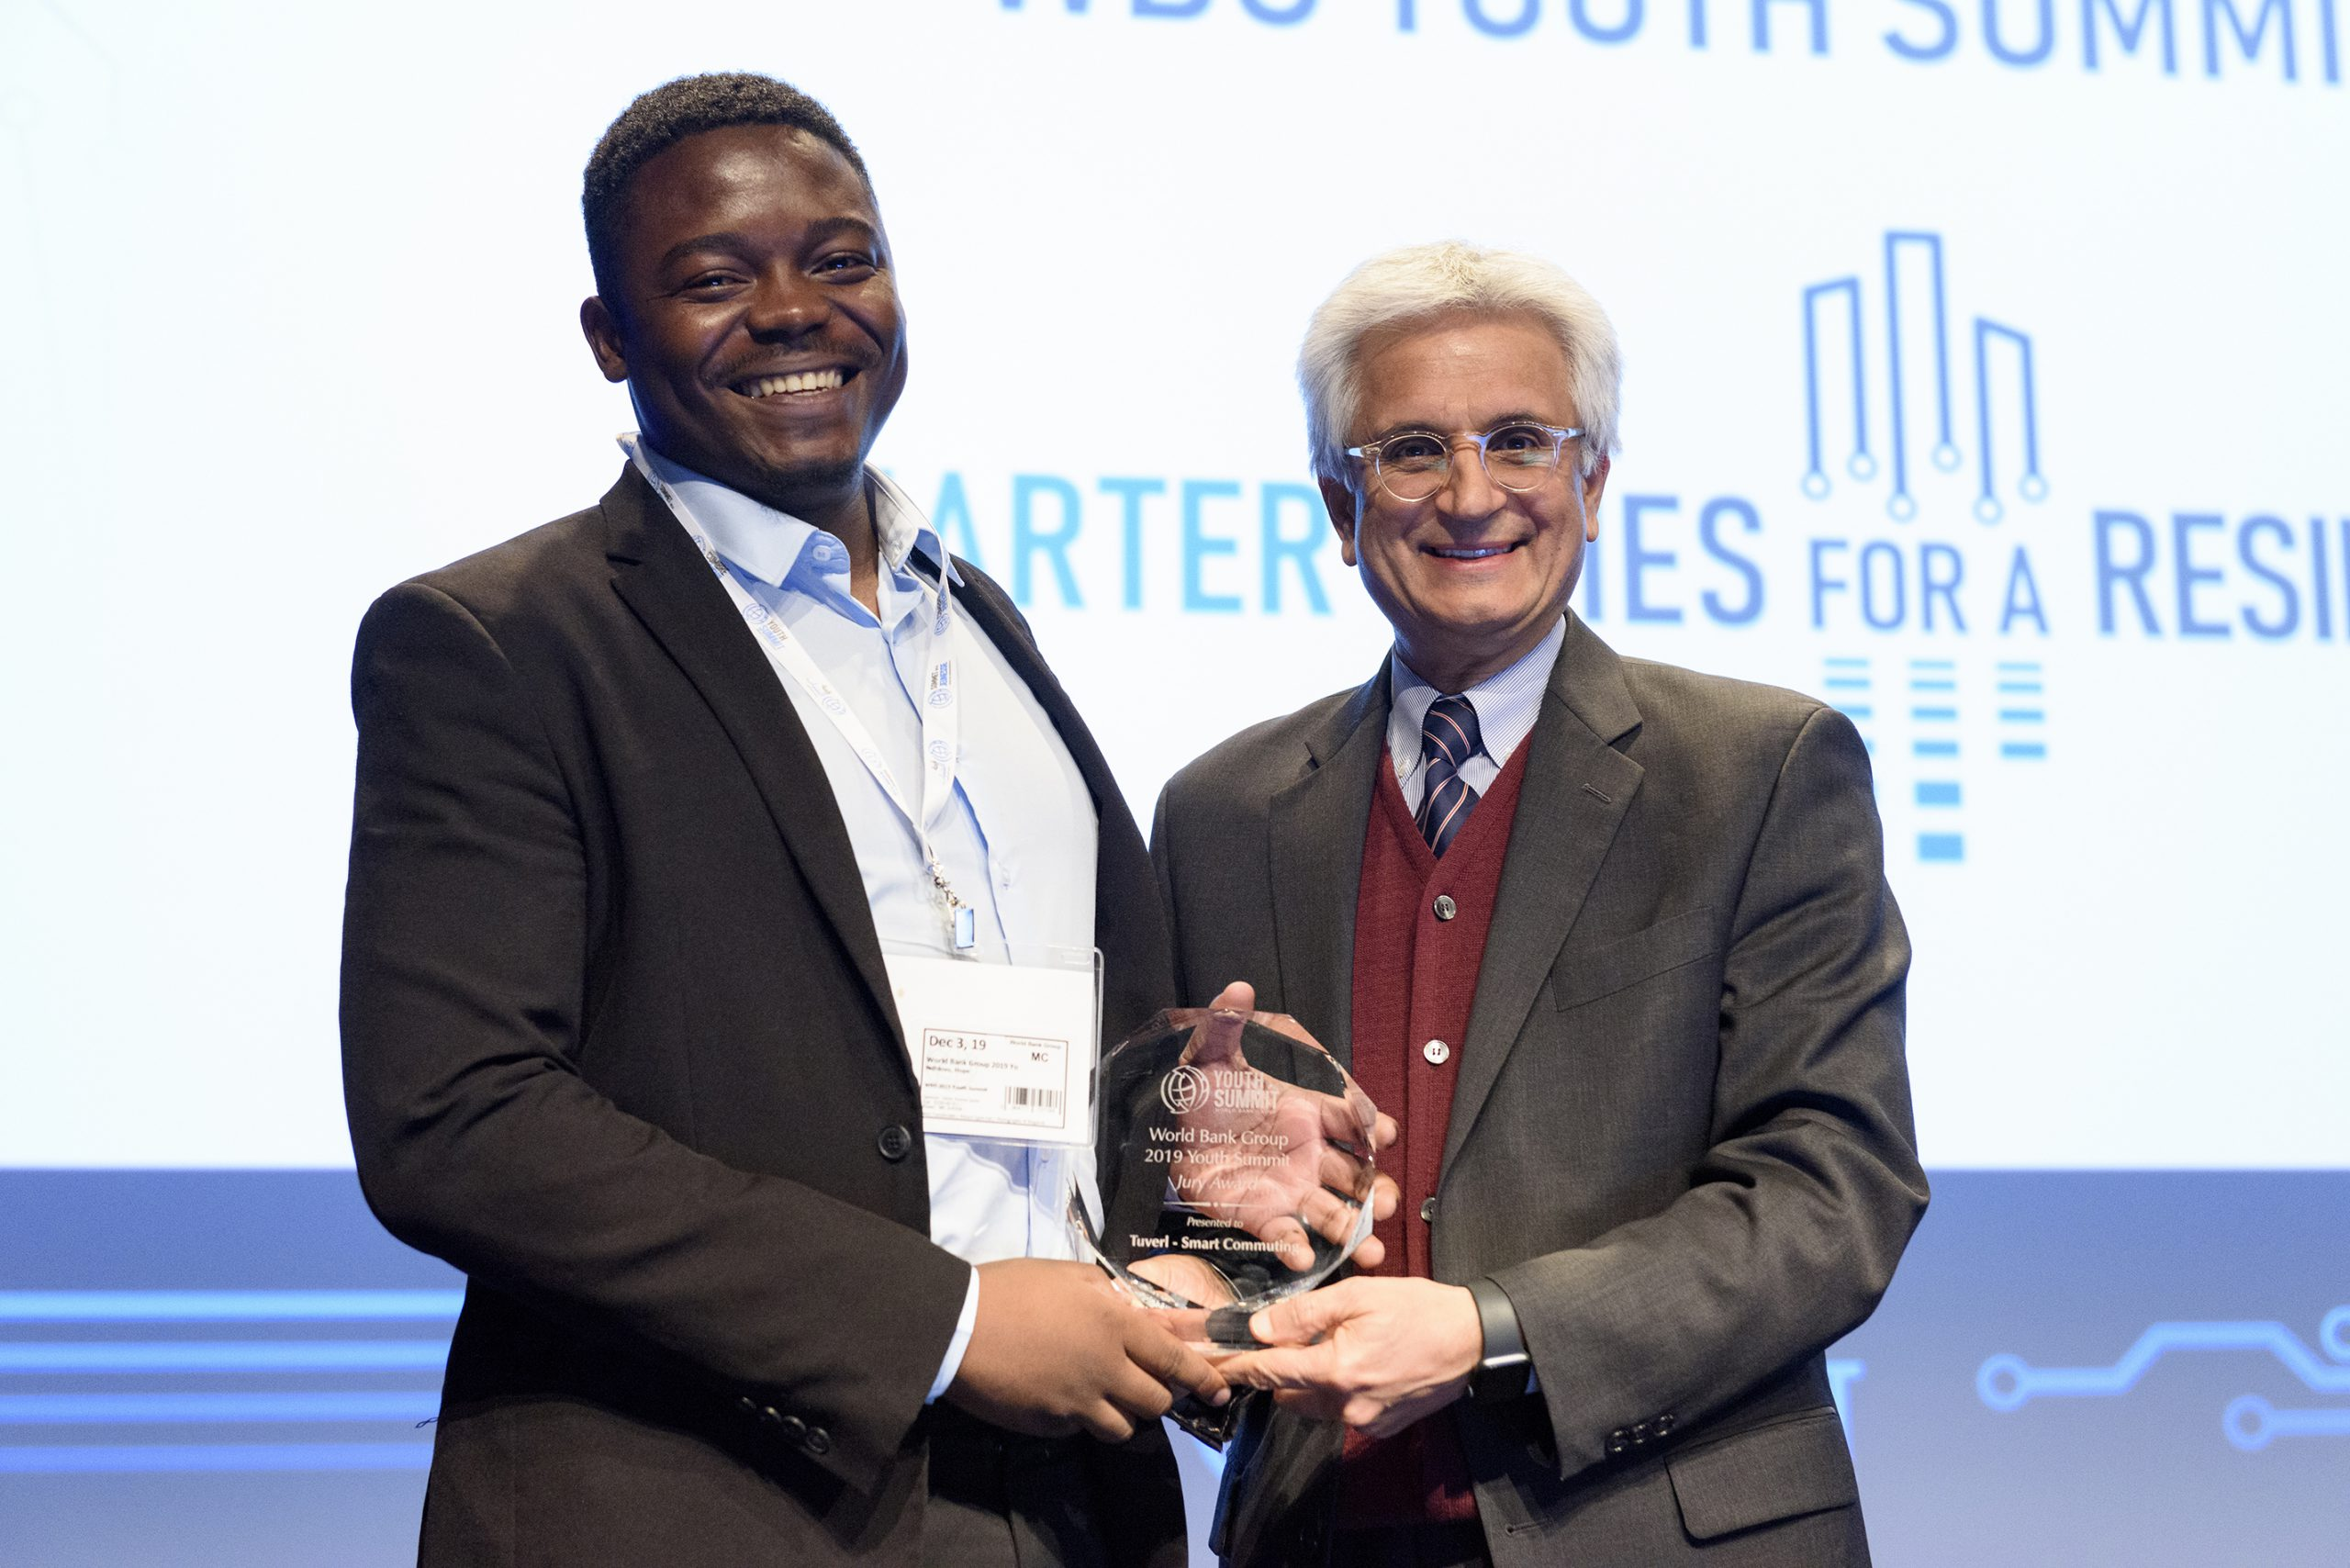 Hope Ndhlovu wins World Bank Youth Summit Pitch Competition